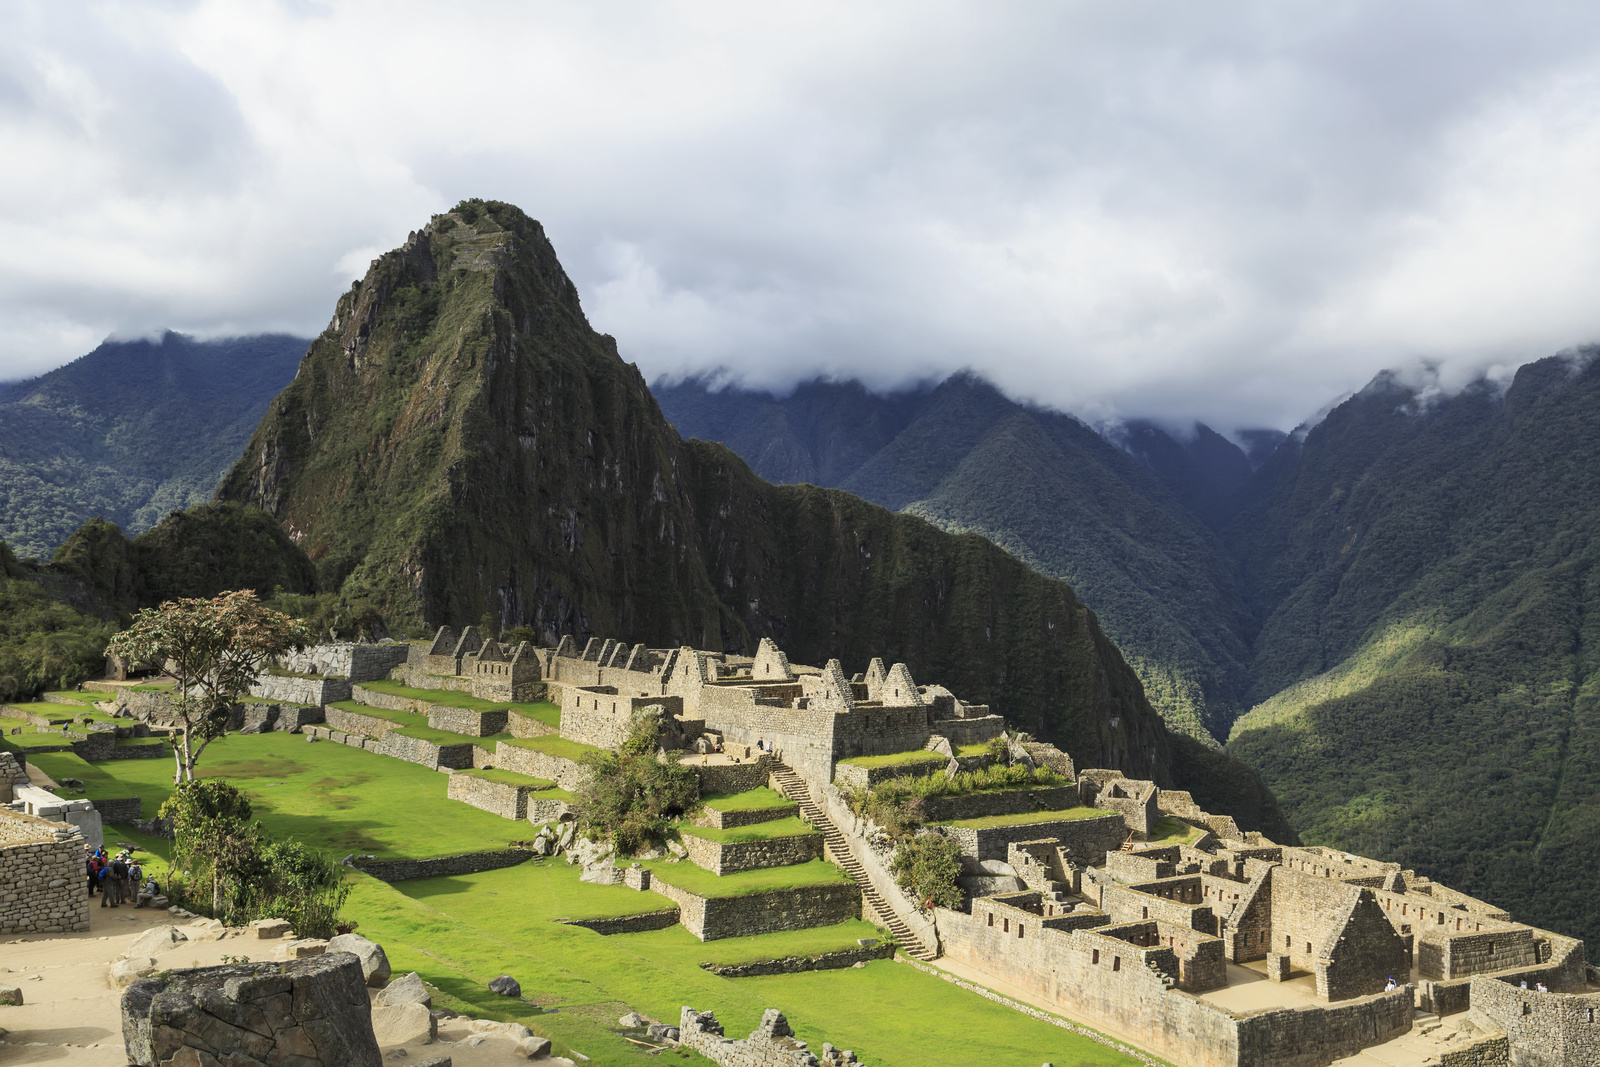 Morning fog and clouds reveal Machu Picchu, the ancient lost city of the Incas, one of Peru's top tourist destinations. Photo Credit: Design Pics Inc/National Geographic Creative